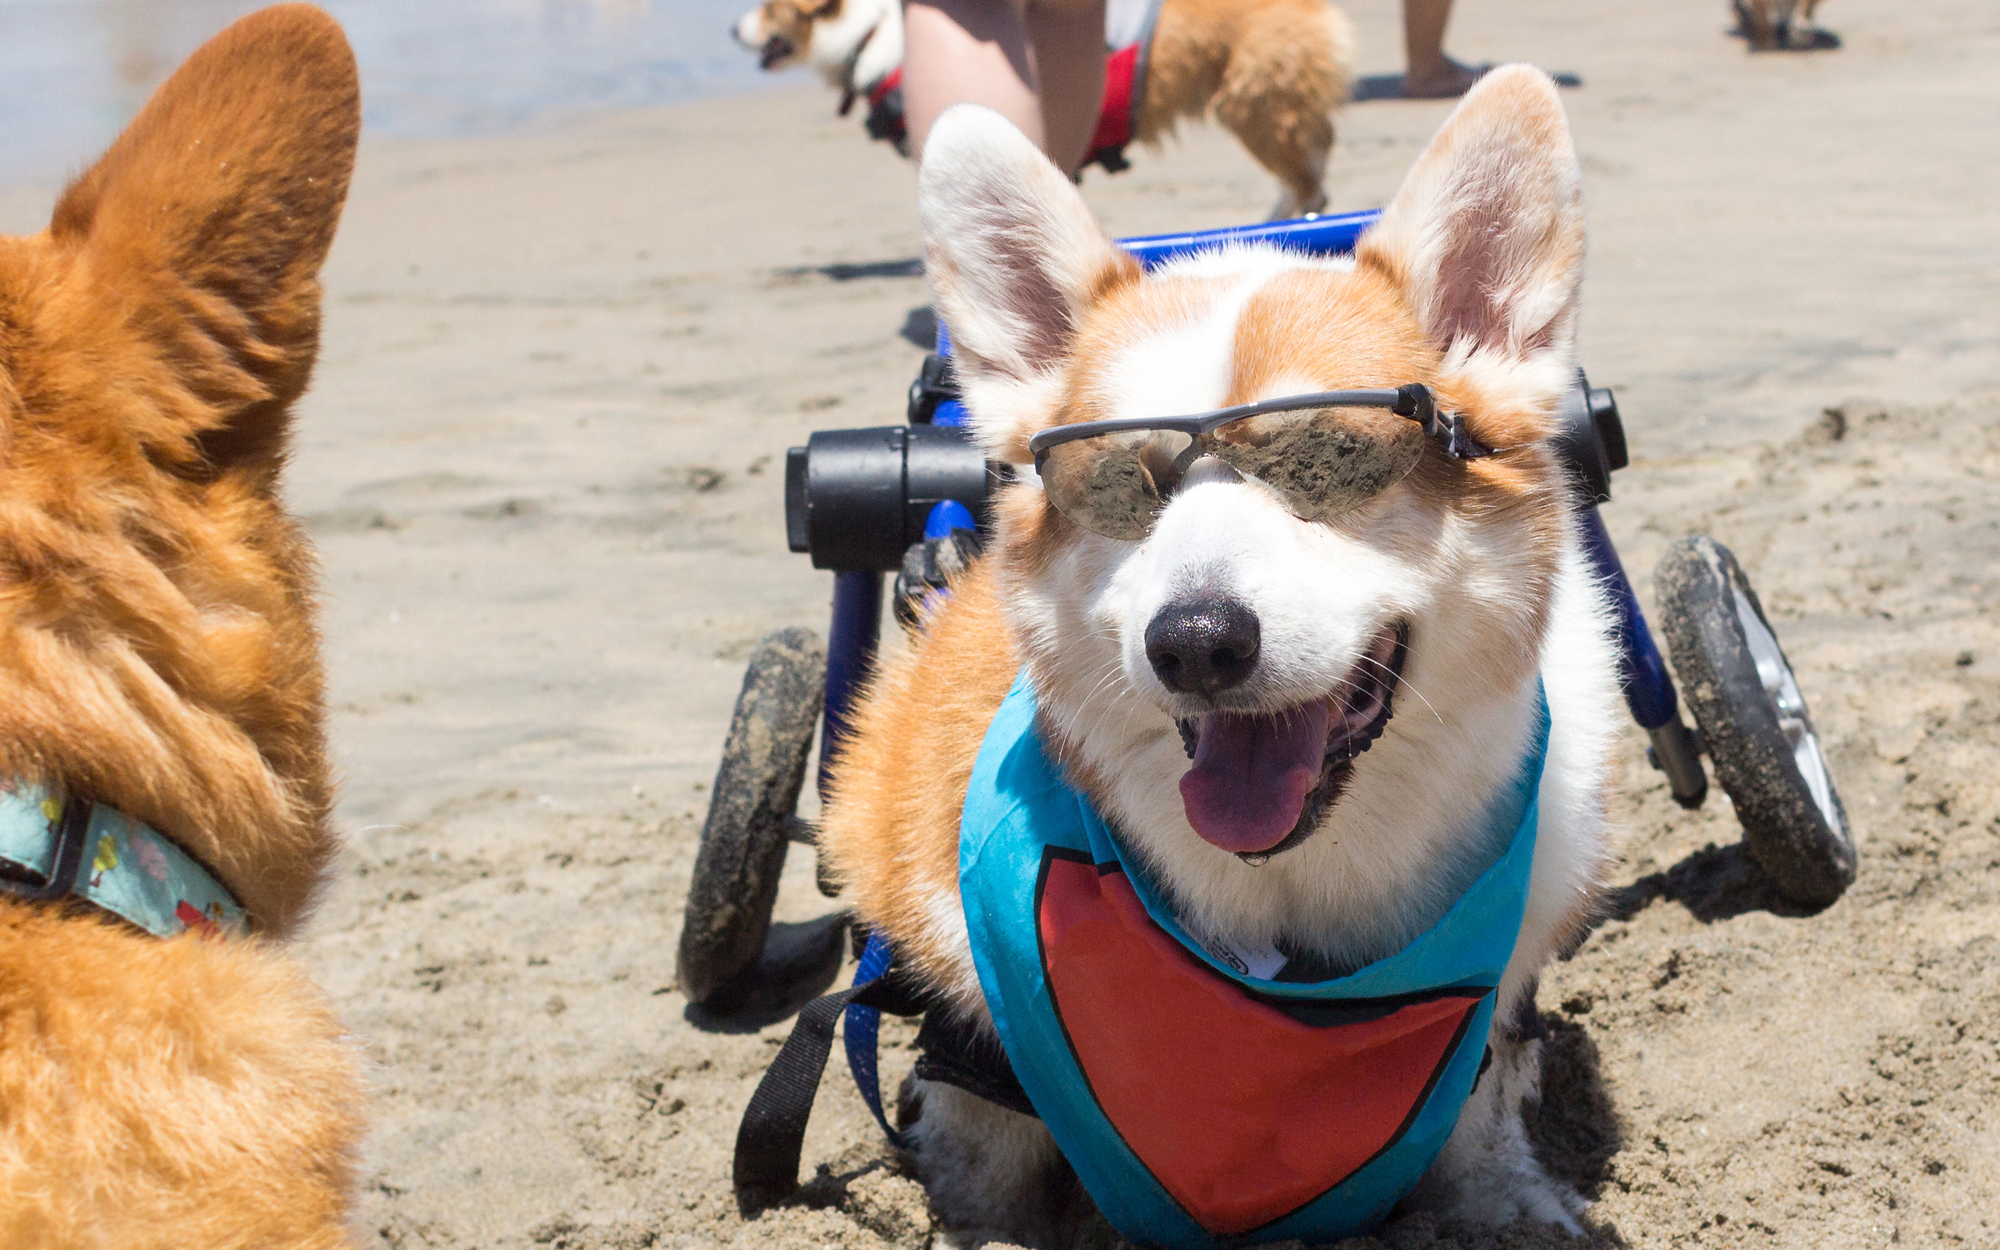 A Corgi Themed Festival is Happening in California This Weekend